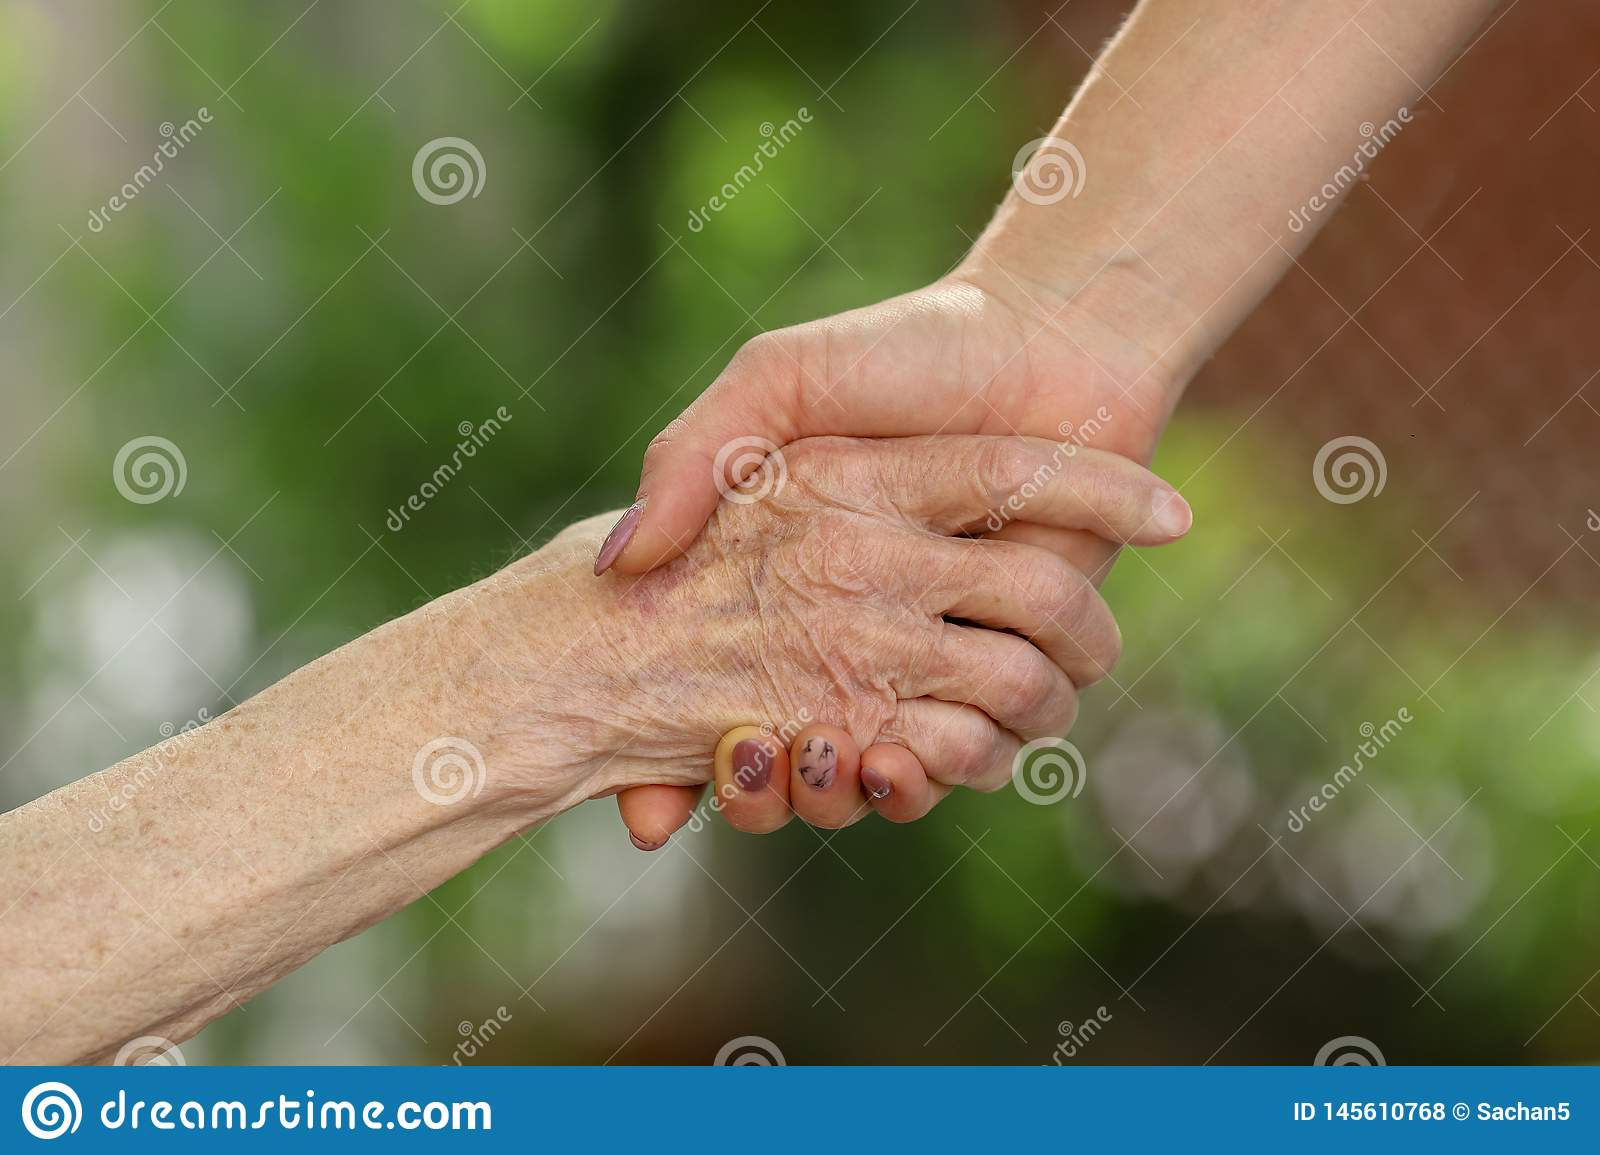 Young caregiver holding seniors hands. Helping hands, care for the elderly concept